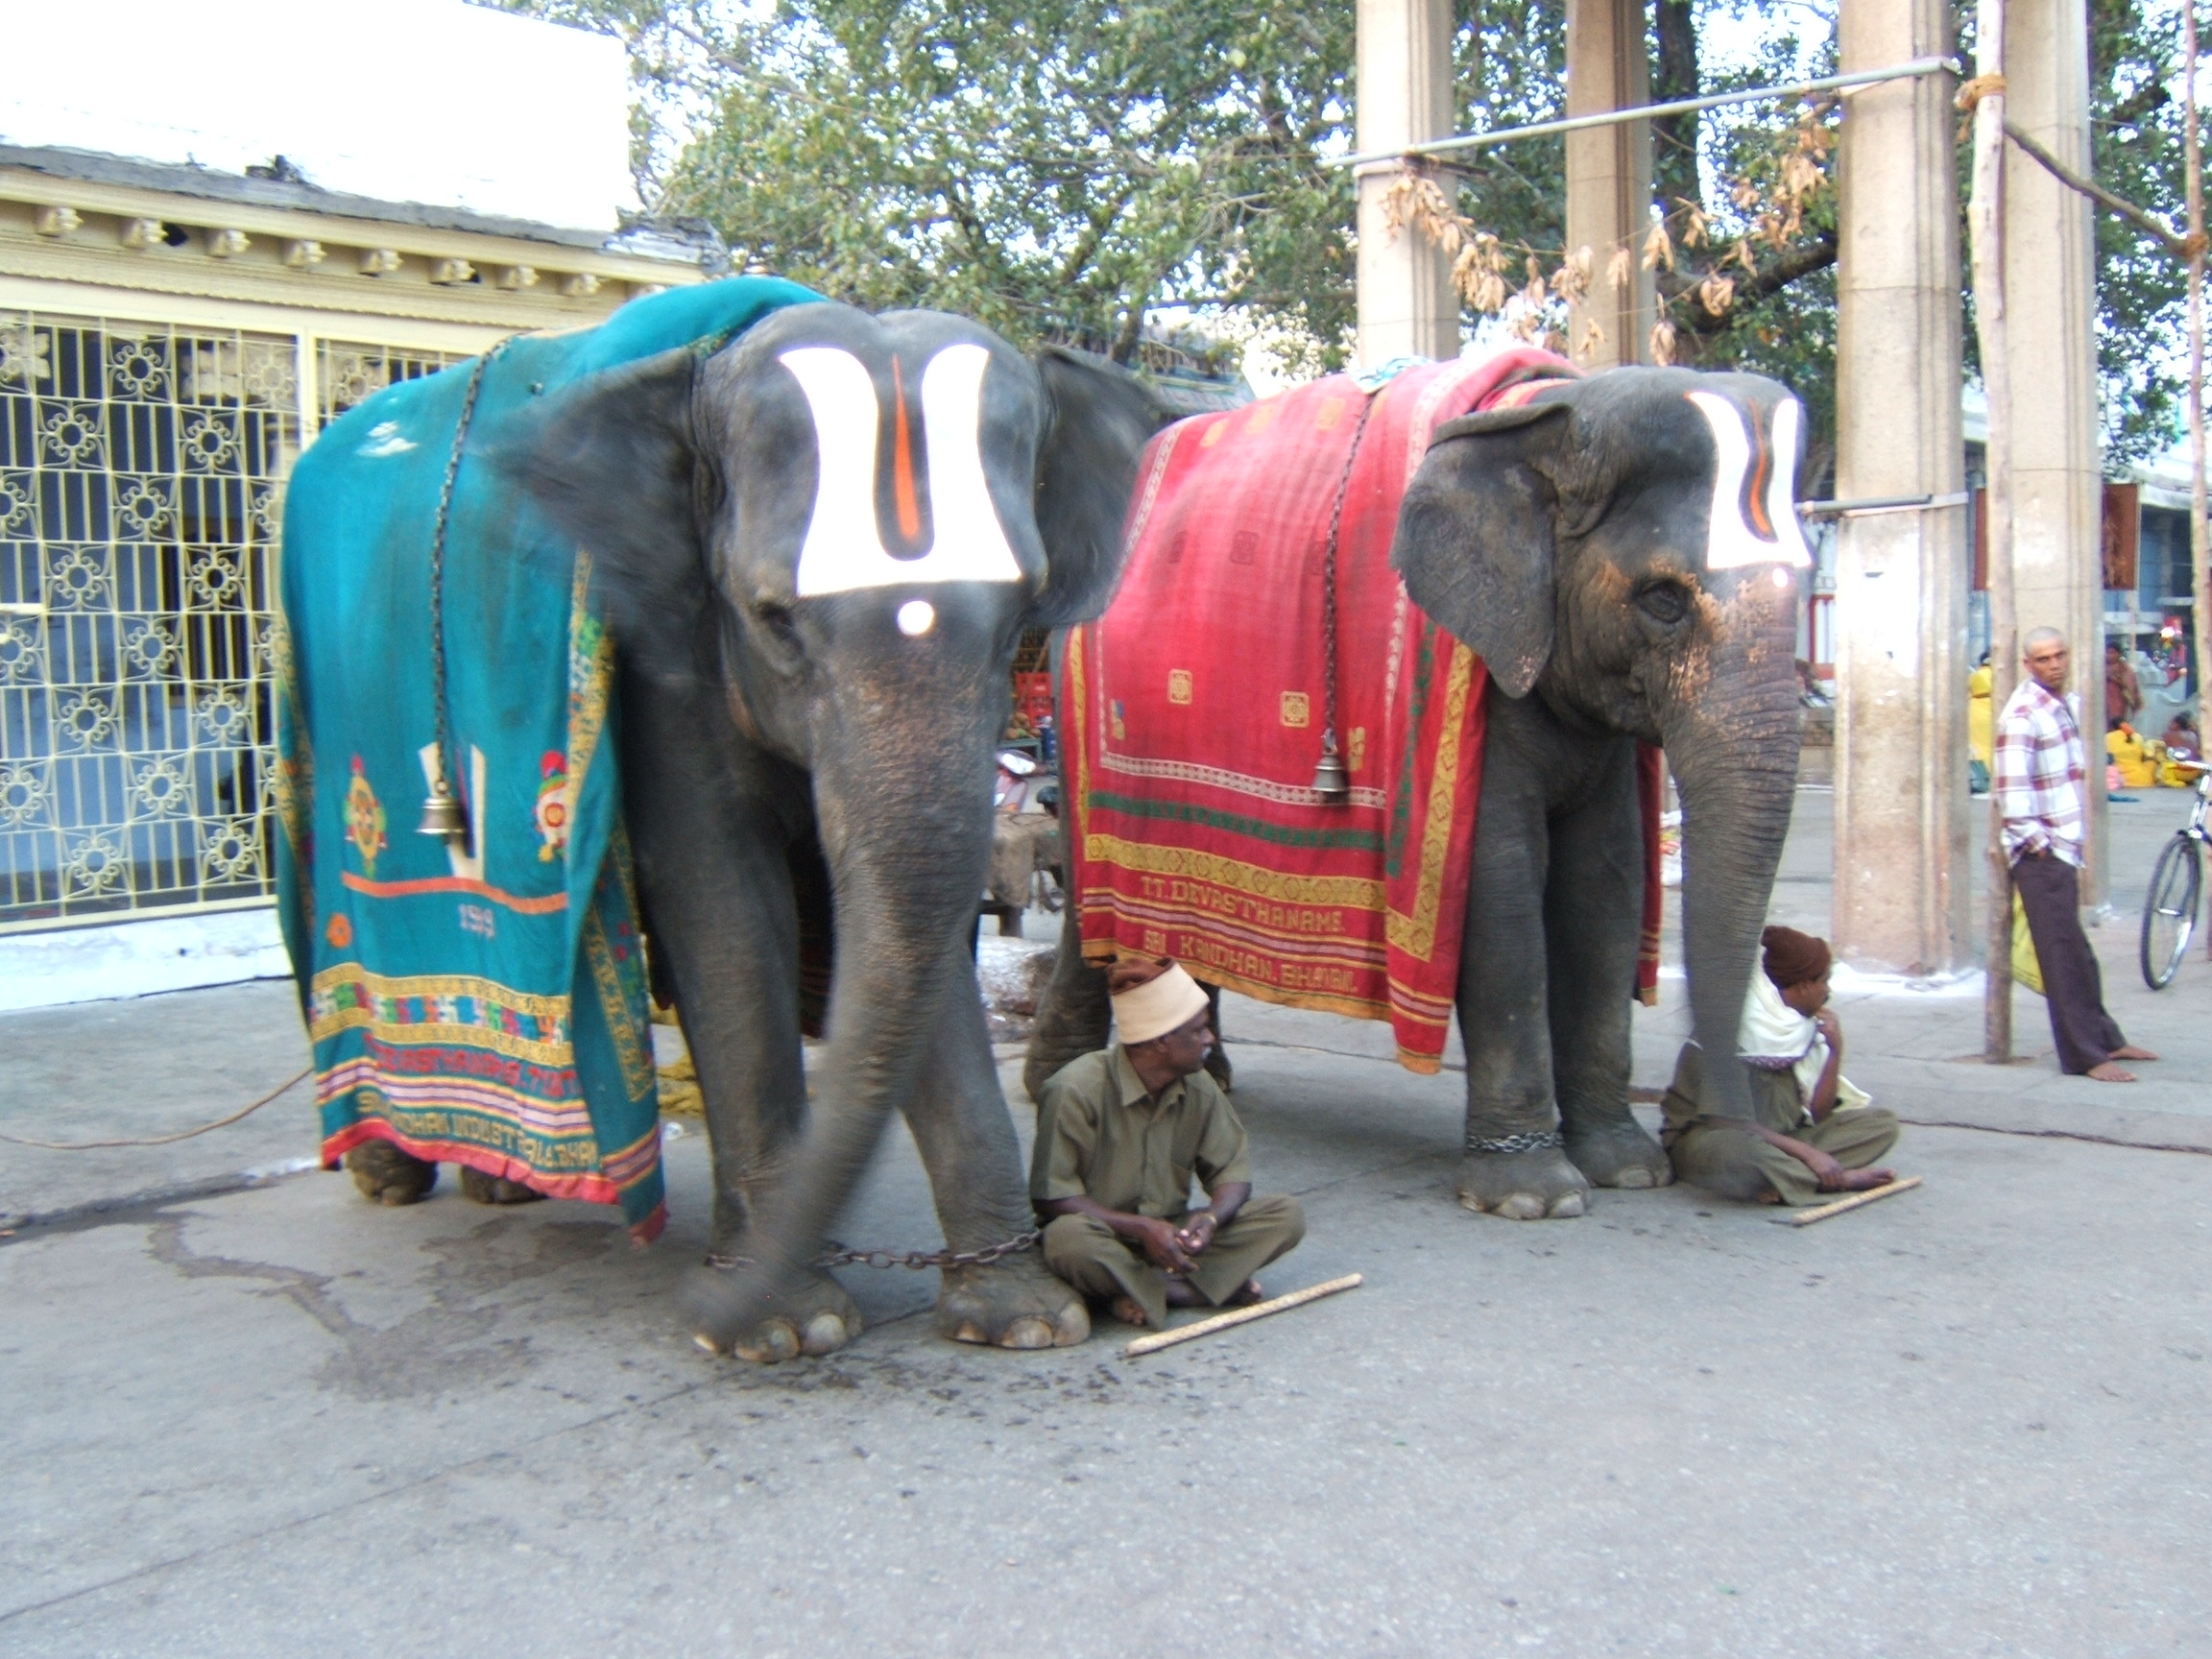 Tirupati India  city pictures gallery : Файл:Temple elephants Tirupati India — Википедия